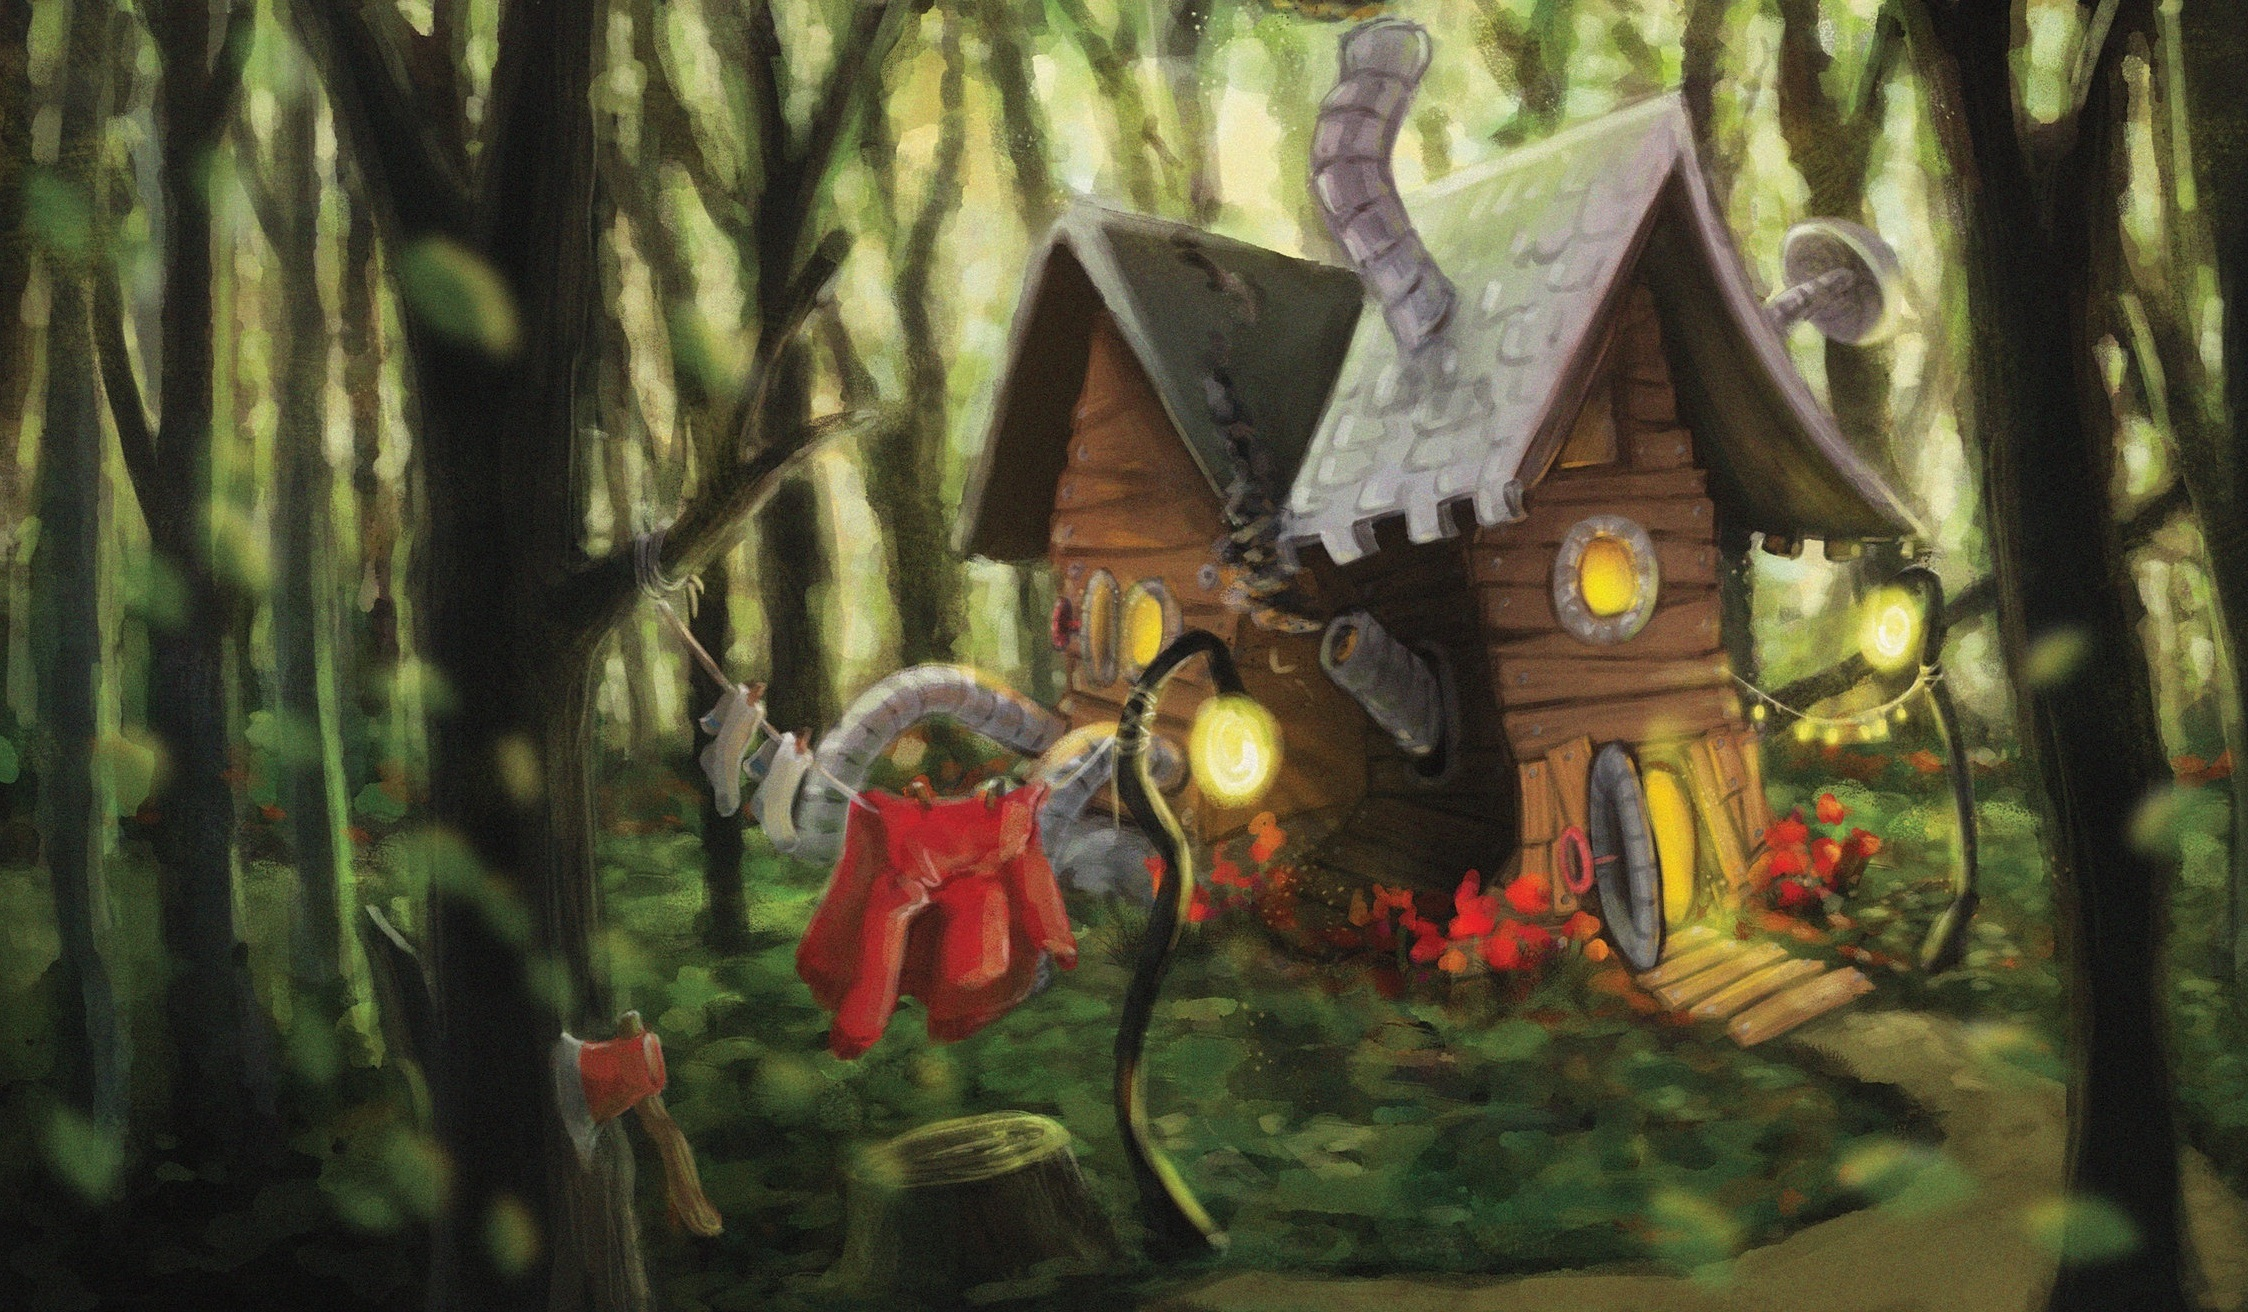 Red Riding Hood's Cabin   Digital, Photoshop.  An illustration re-imagining the set design for Little Red Riding Hood. In this world, she is a mechanic and inventor.   © Copyright Camille Codling 2018